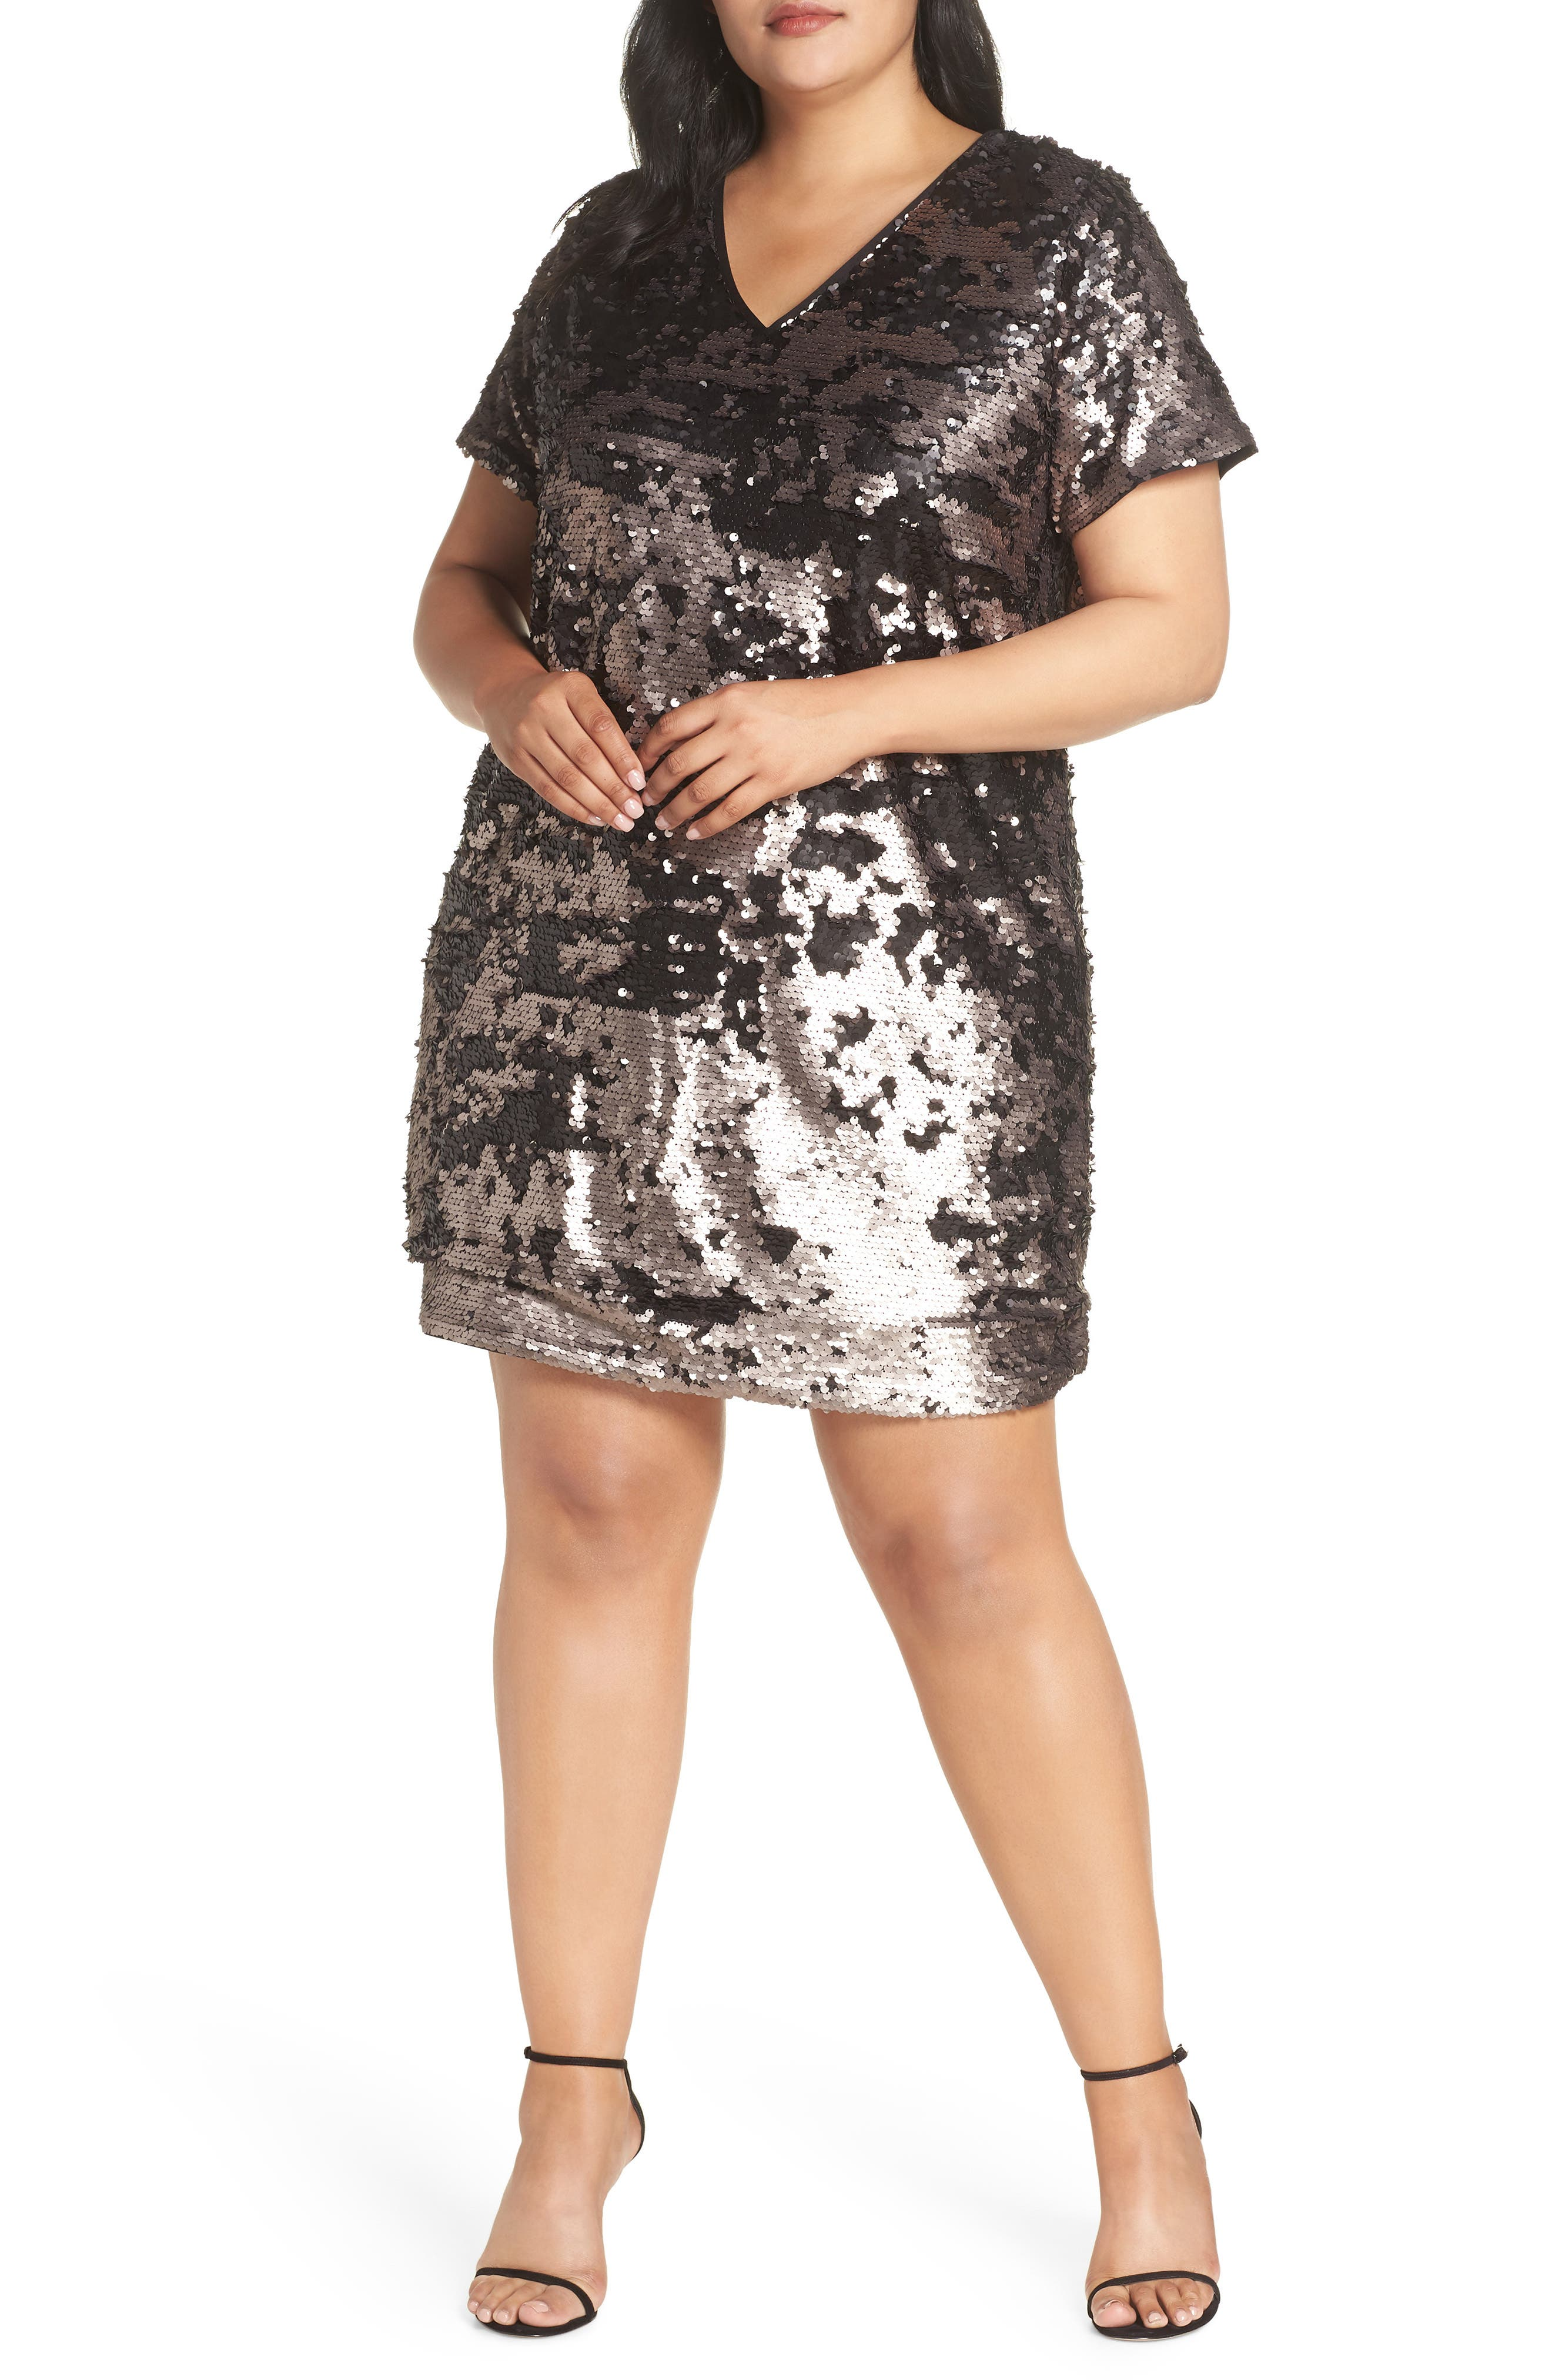 60s 70s Plus Size Dresses, Clothing, Costumes Plus Size Womens 1.state Sequin Shift Dress $139.00 AT vintagedancer.com